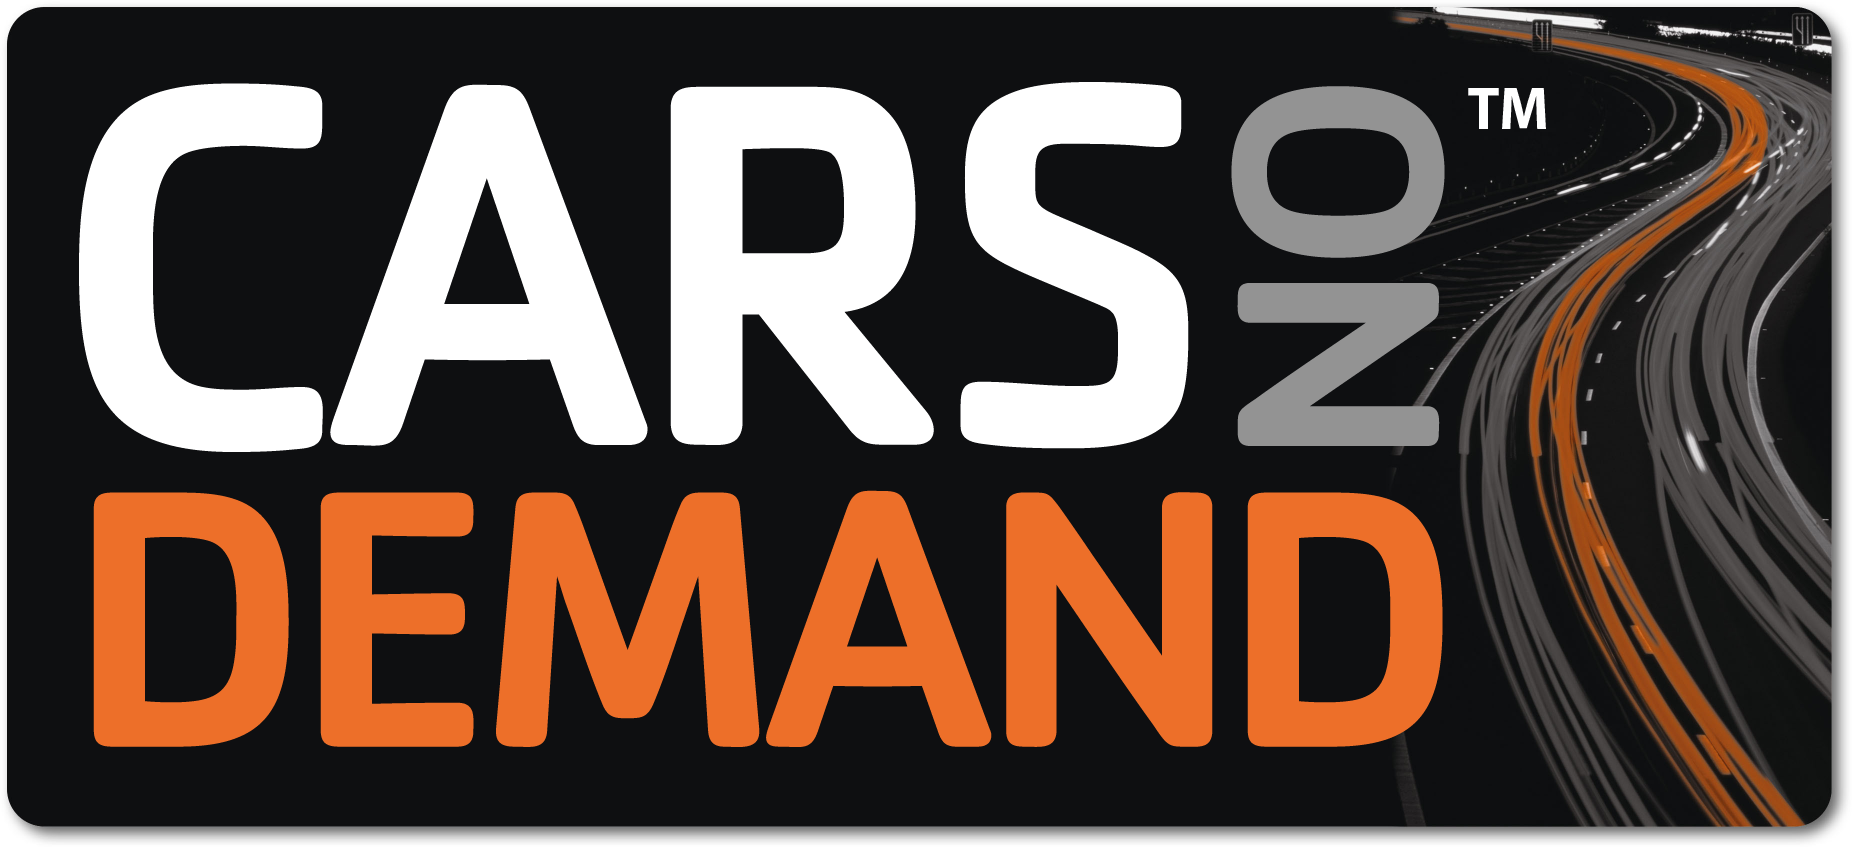 Read Cars On Demand Reviews